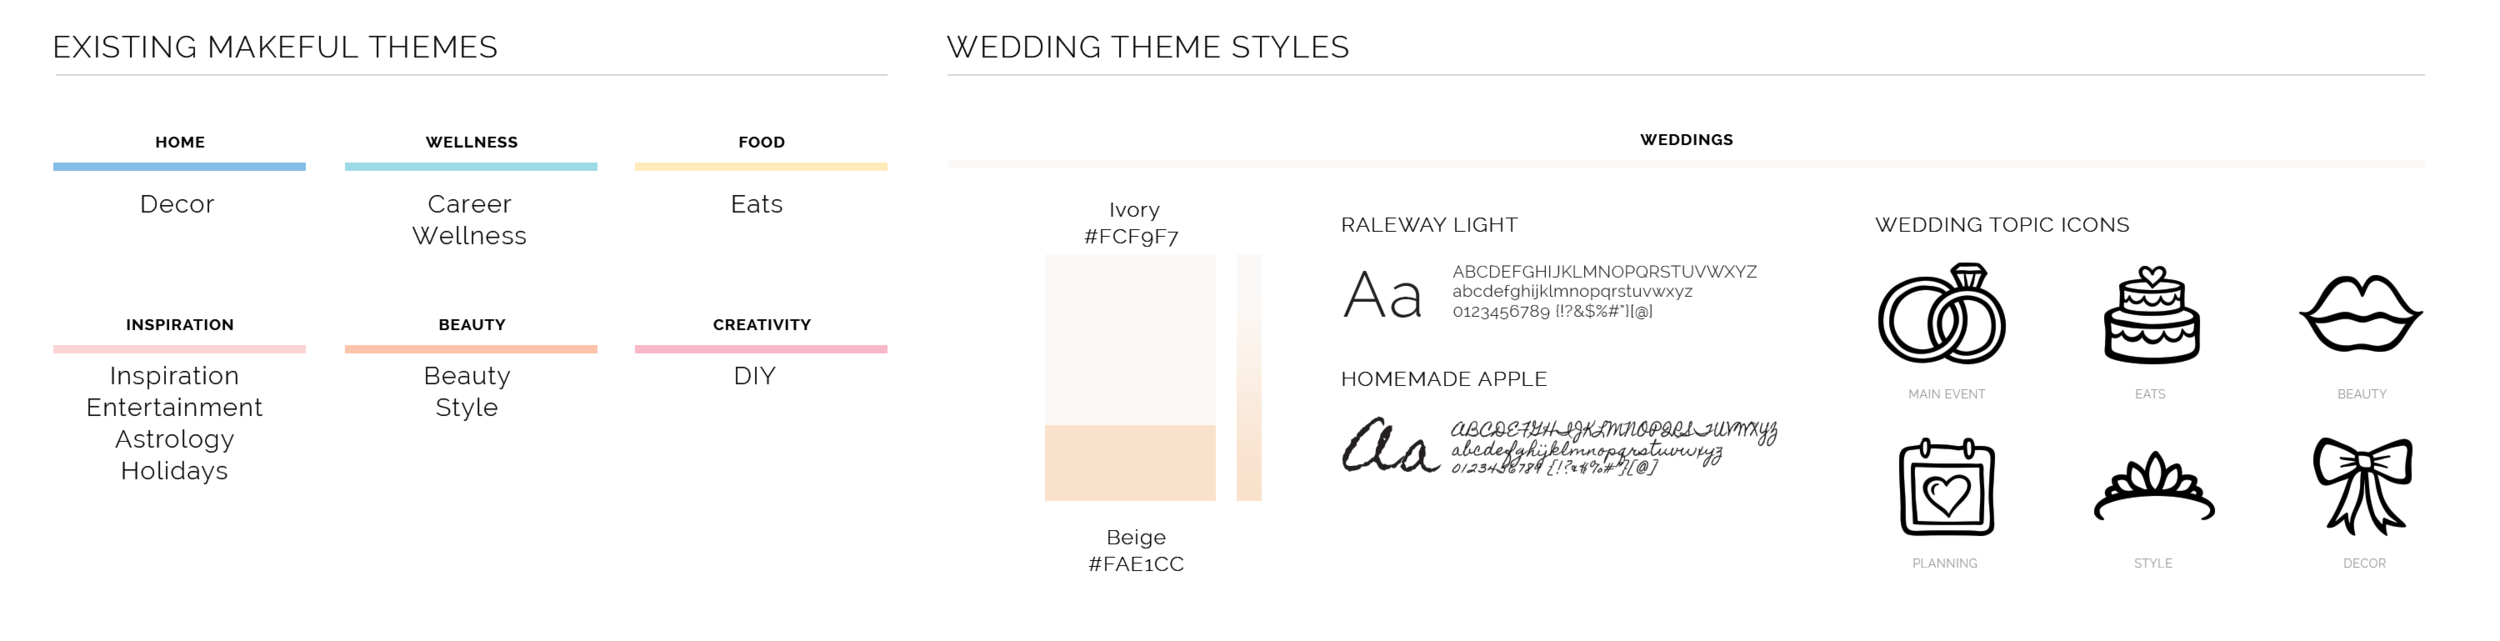 MF_weddings_themes_all.png